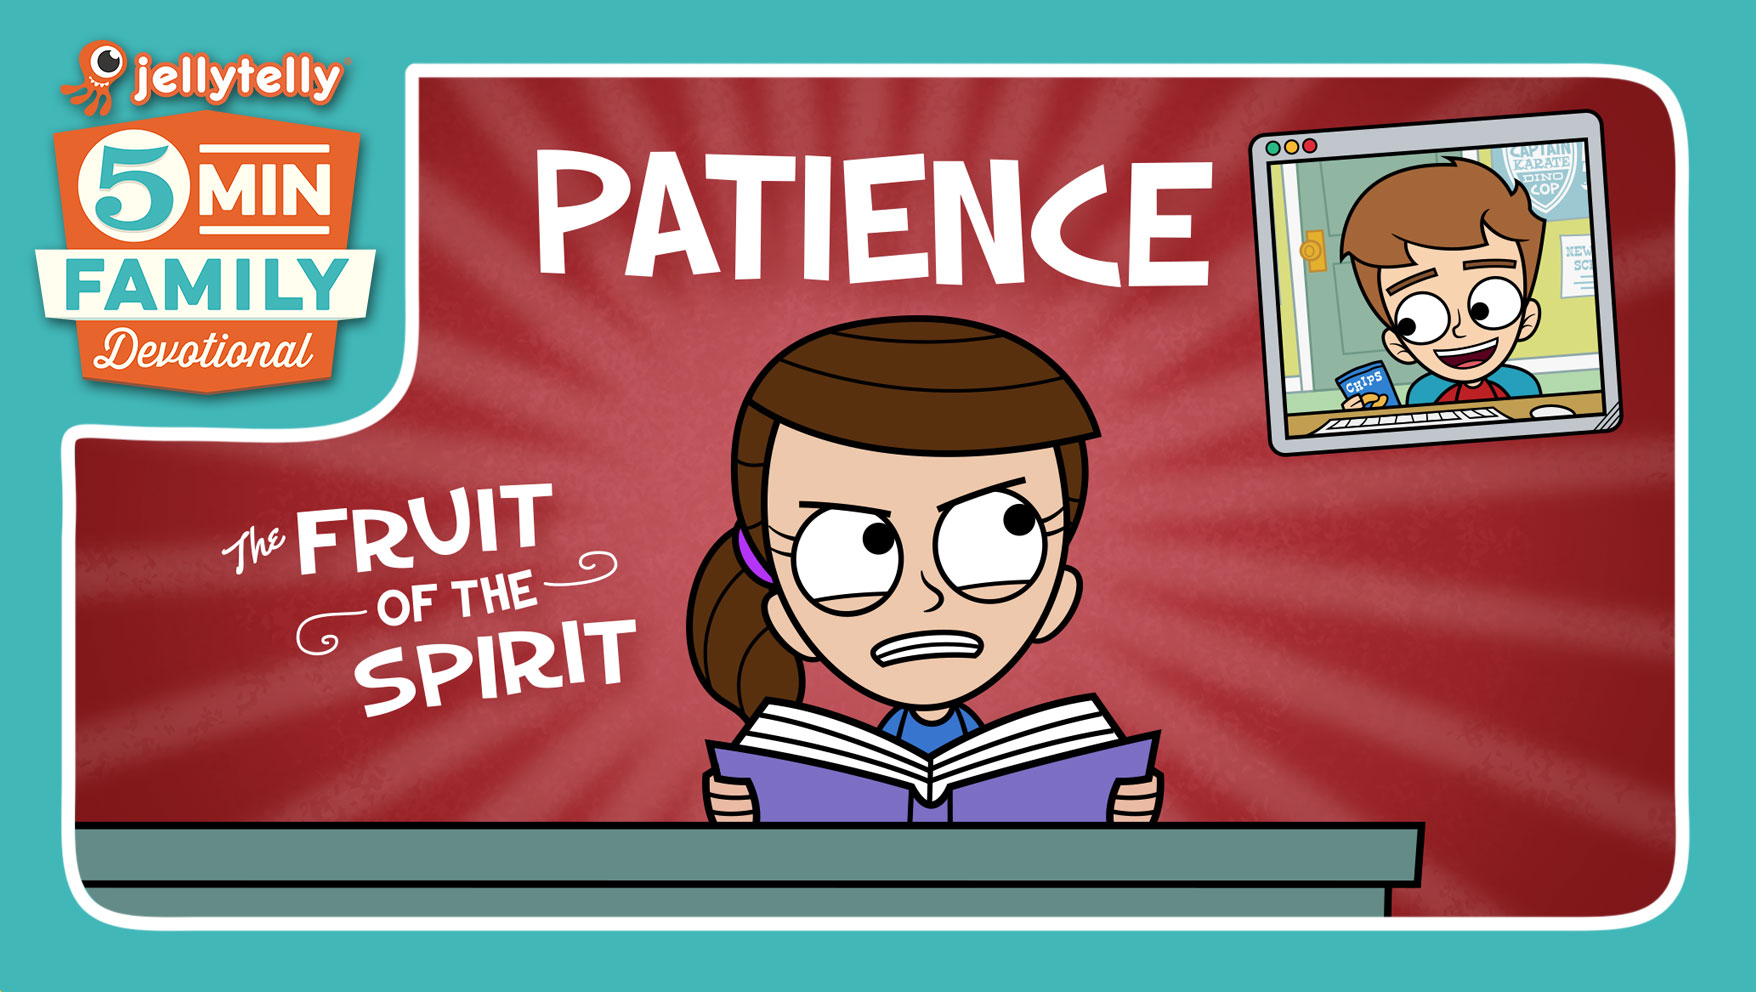 Patience - The Fruit of the Spirit 5 Minute Family Devotional